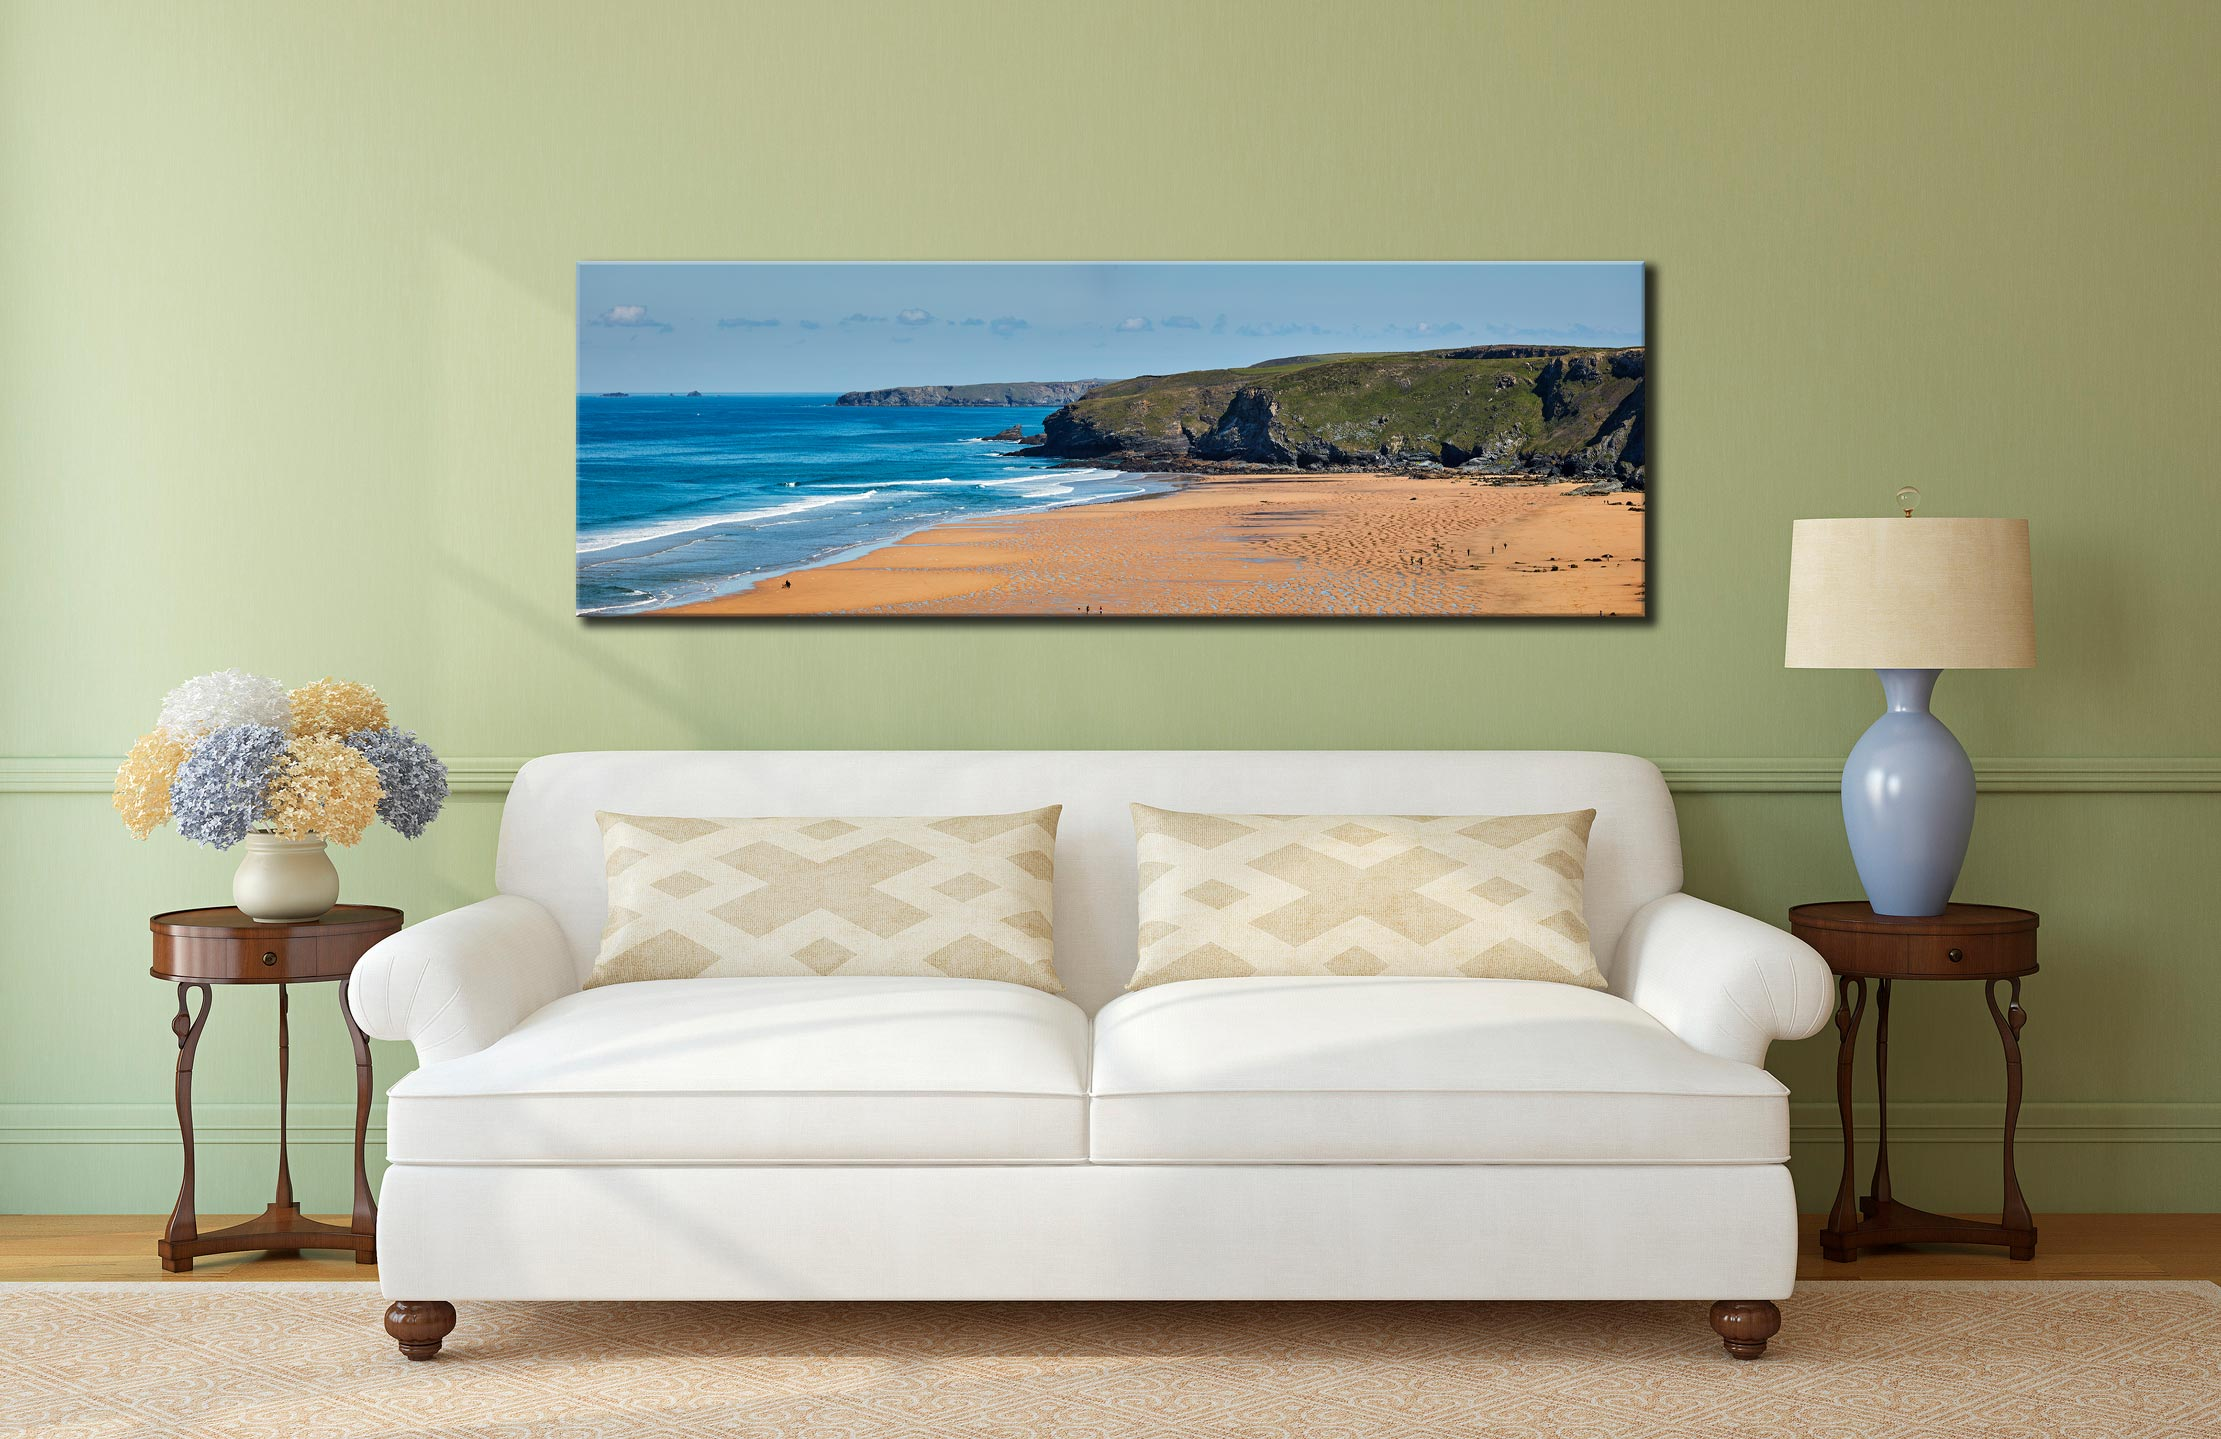 Watergate Bay Panorama - Canvas Print on wall